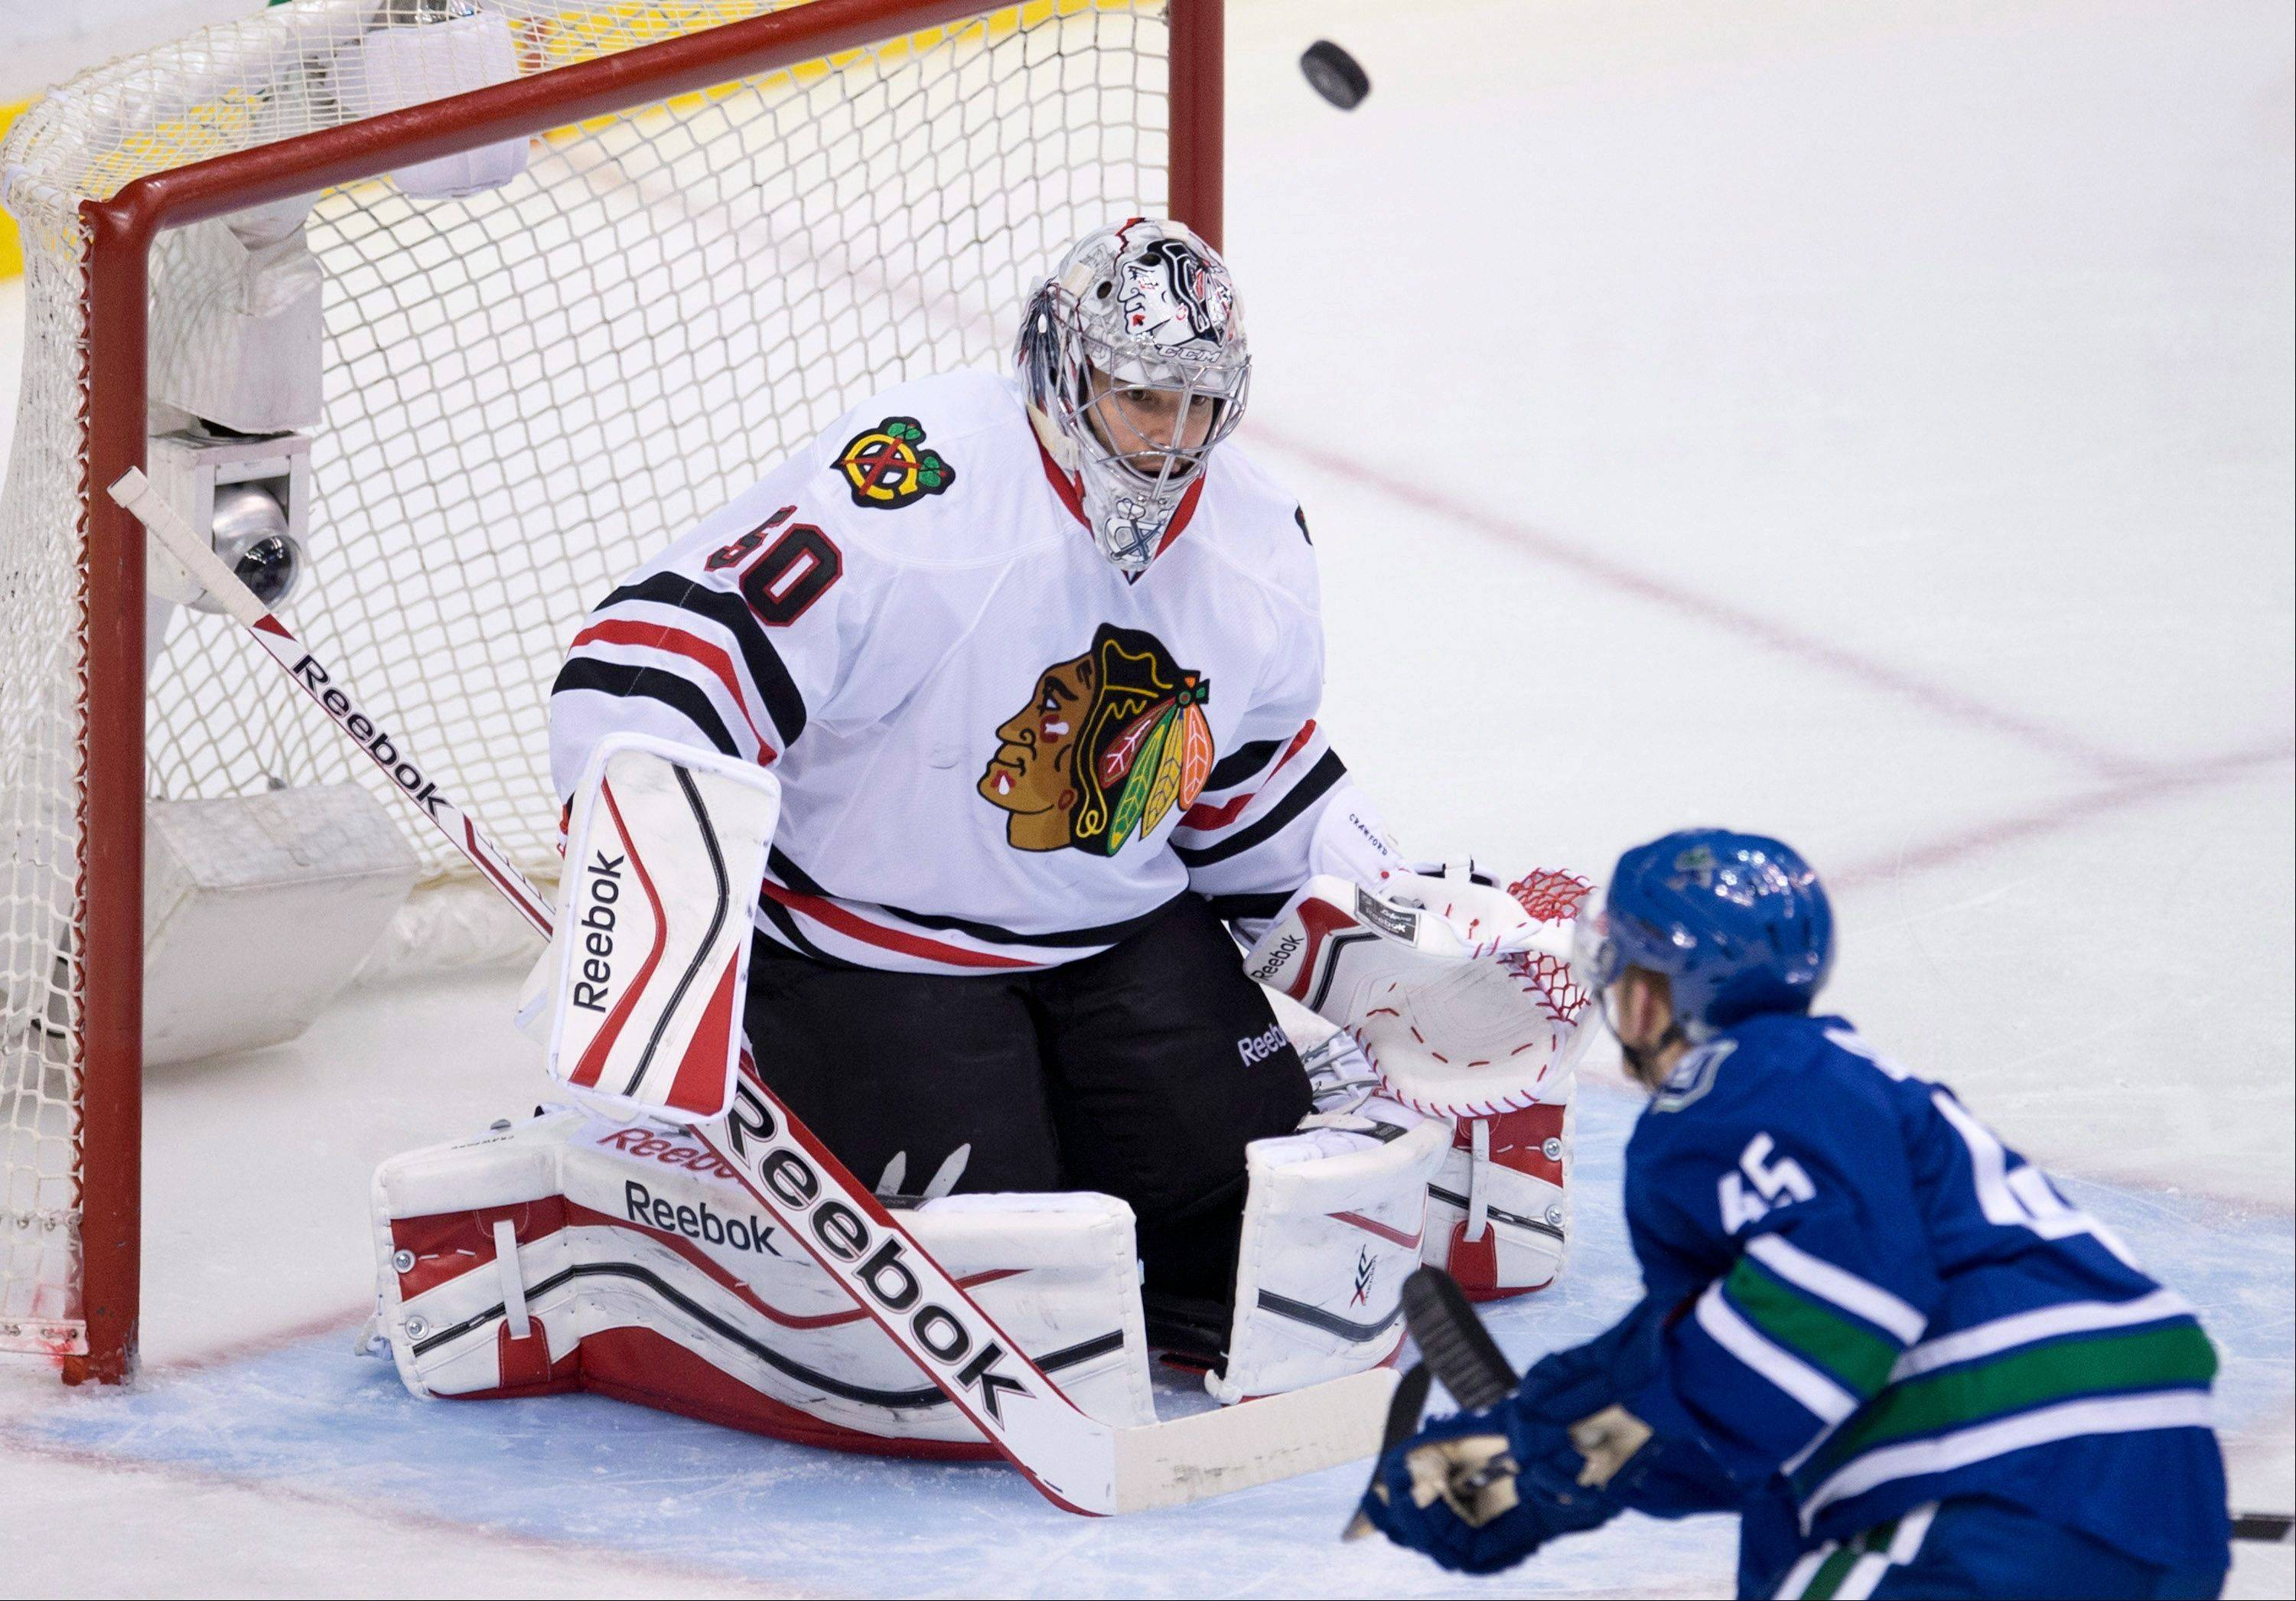 Vancouver Canucks center Jordan Schroeder (45) tries to get a shot past Chicago Blackhawks goalie Corey Crawford (50) during the first period of an NHL hockey game Wednesday, Jan. 29, 2014, in Vancouver, British Columbia.